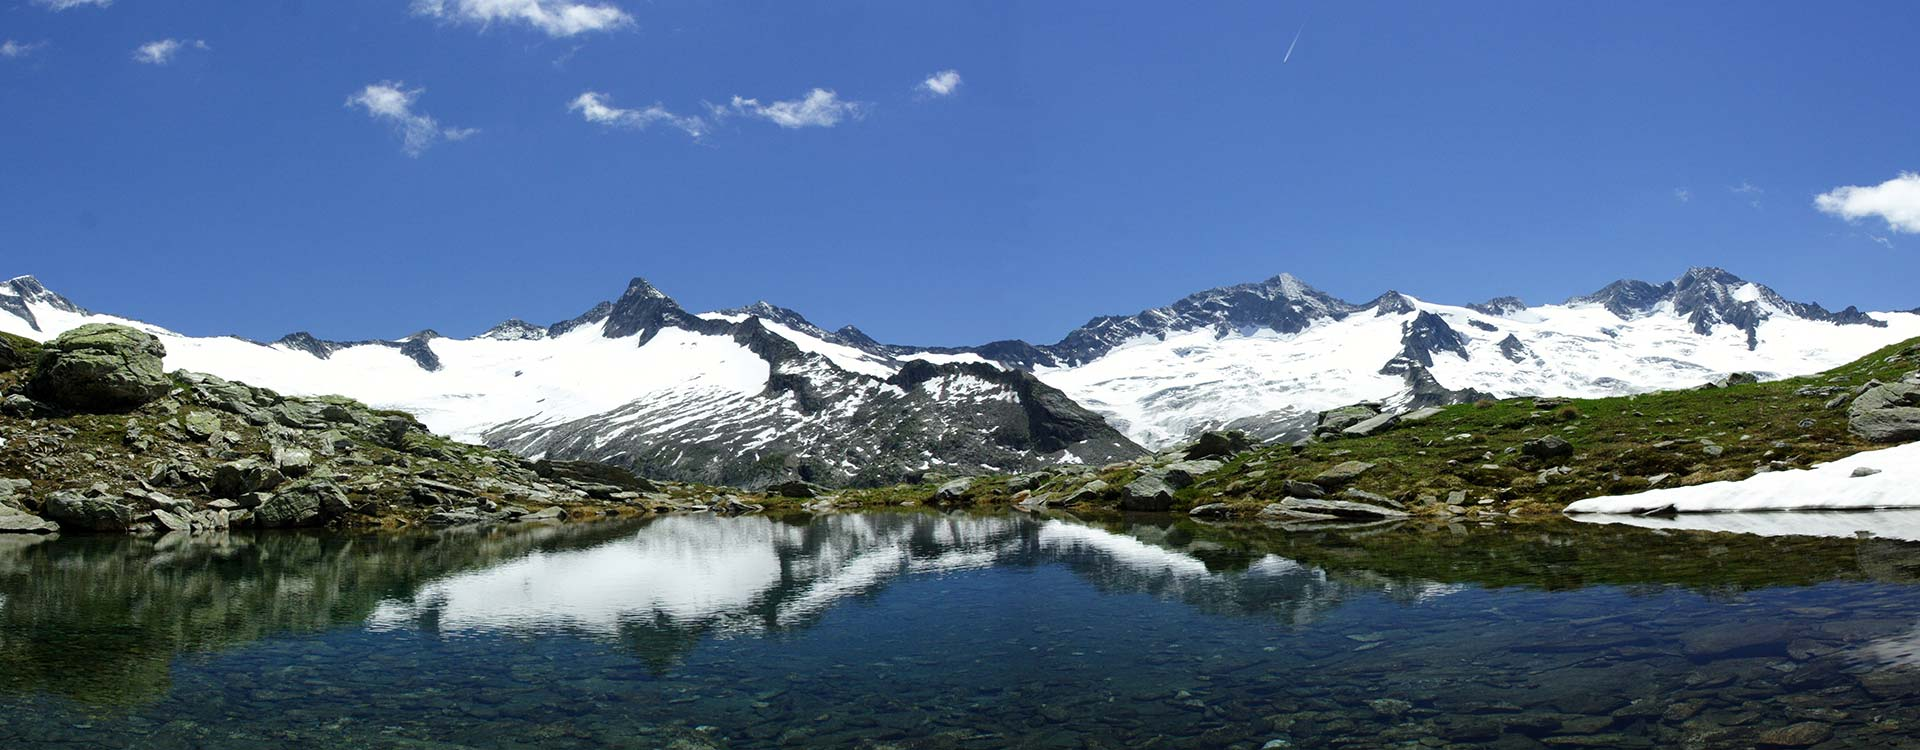 crystal clear Mountain Lakes at the Foot of glaciated Peaks